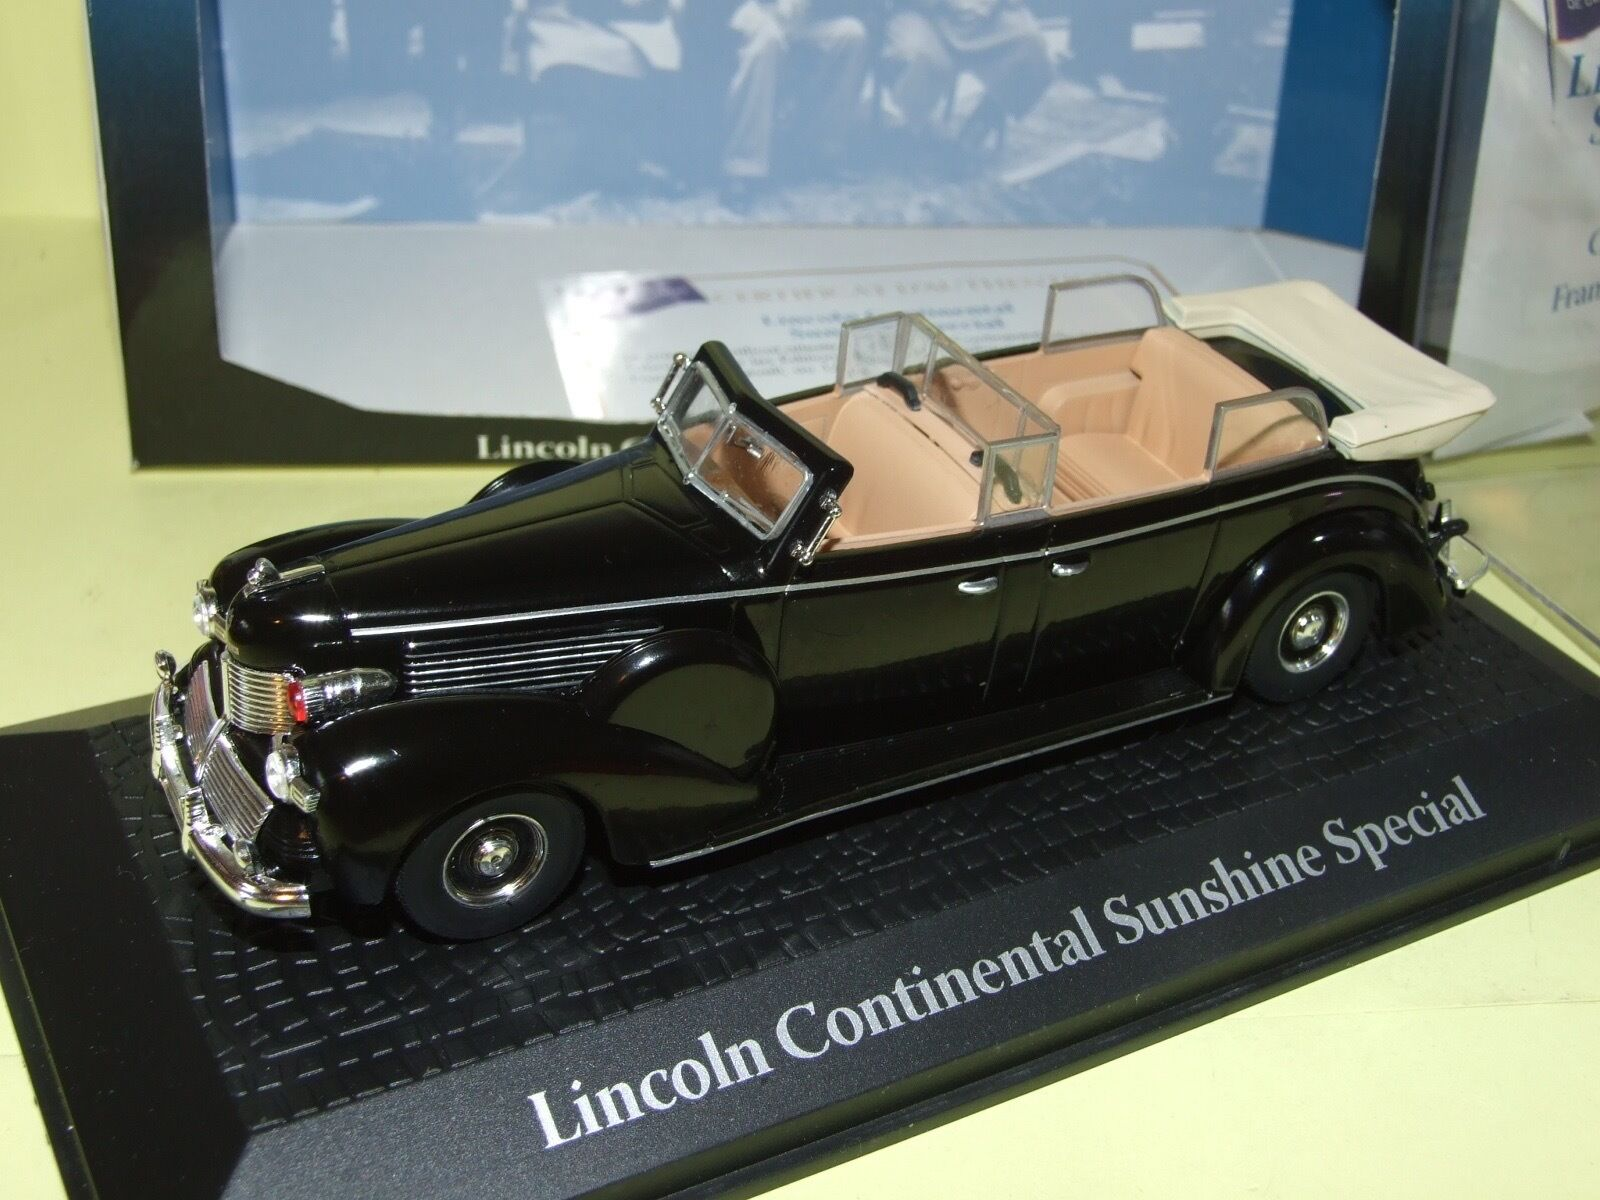 LINCOLN CONTINENTAL SUNSHINE SPECIAL ROOSEVELT 1945 chef d'état ATLAS 1 43